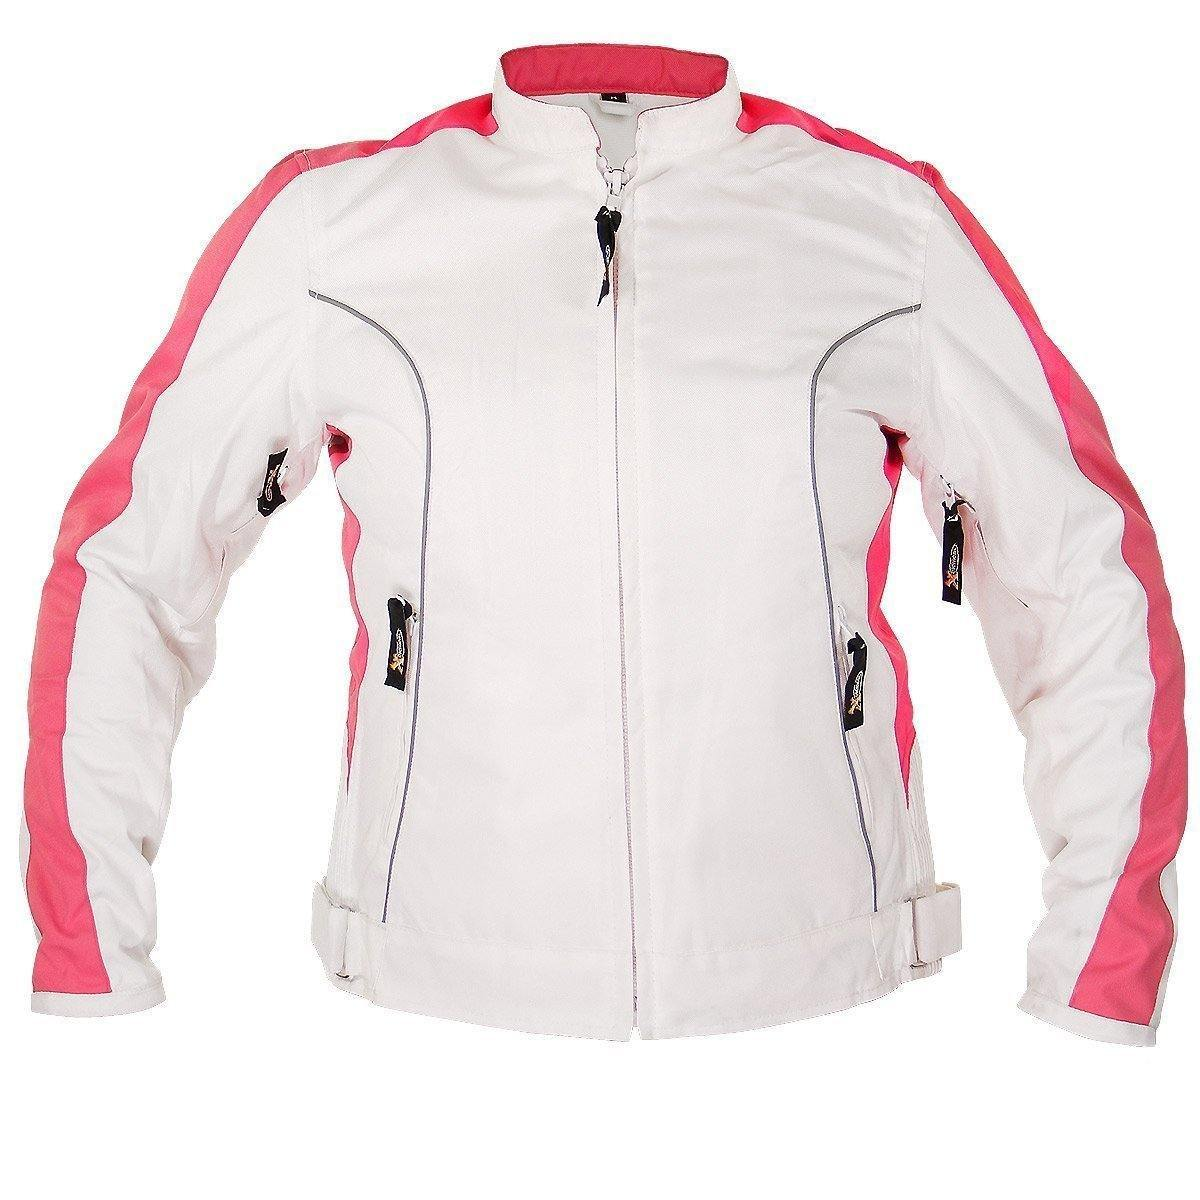 Xelement BXU358924 'Tribal Heart' Women's White and Pink Tri-Tex Motorcycle Jacket